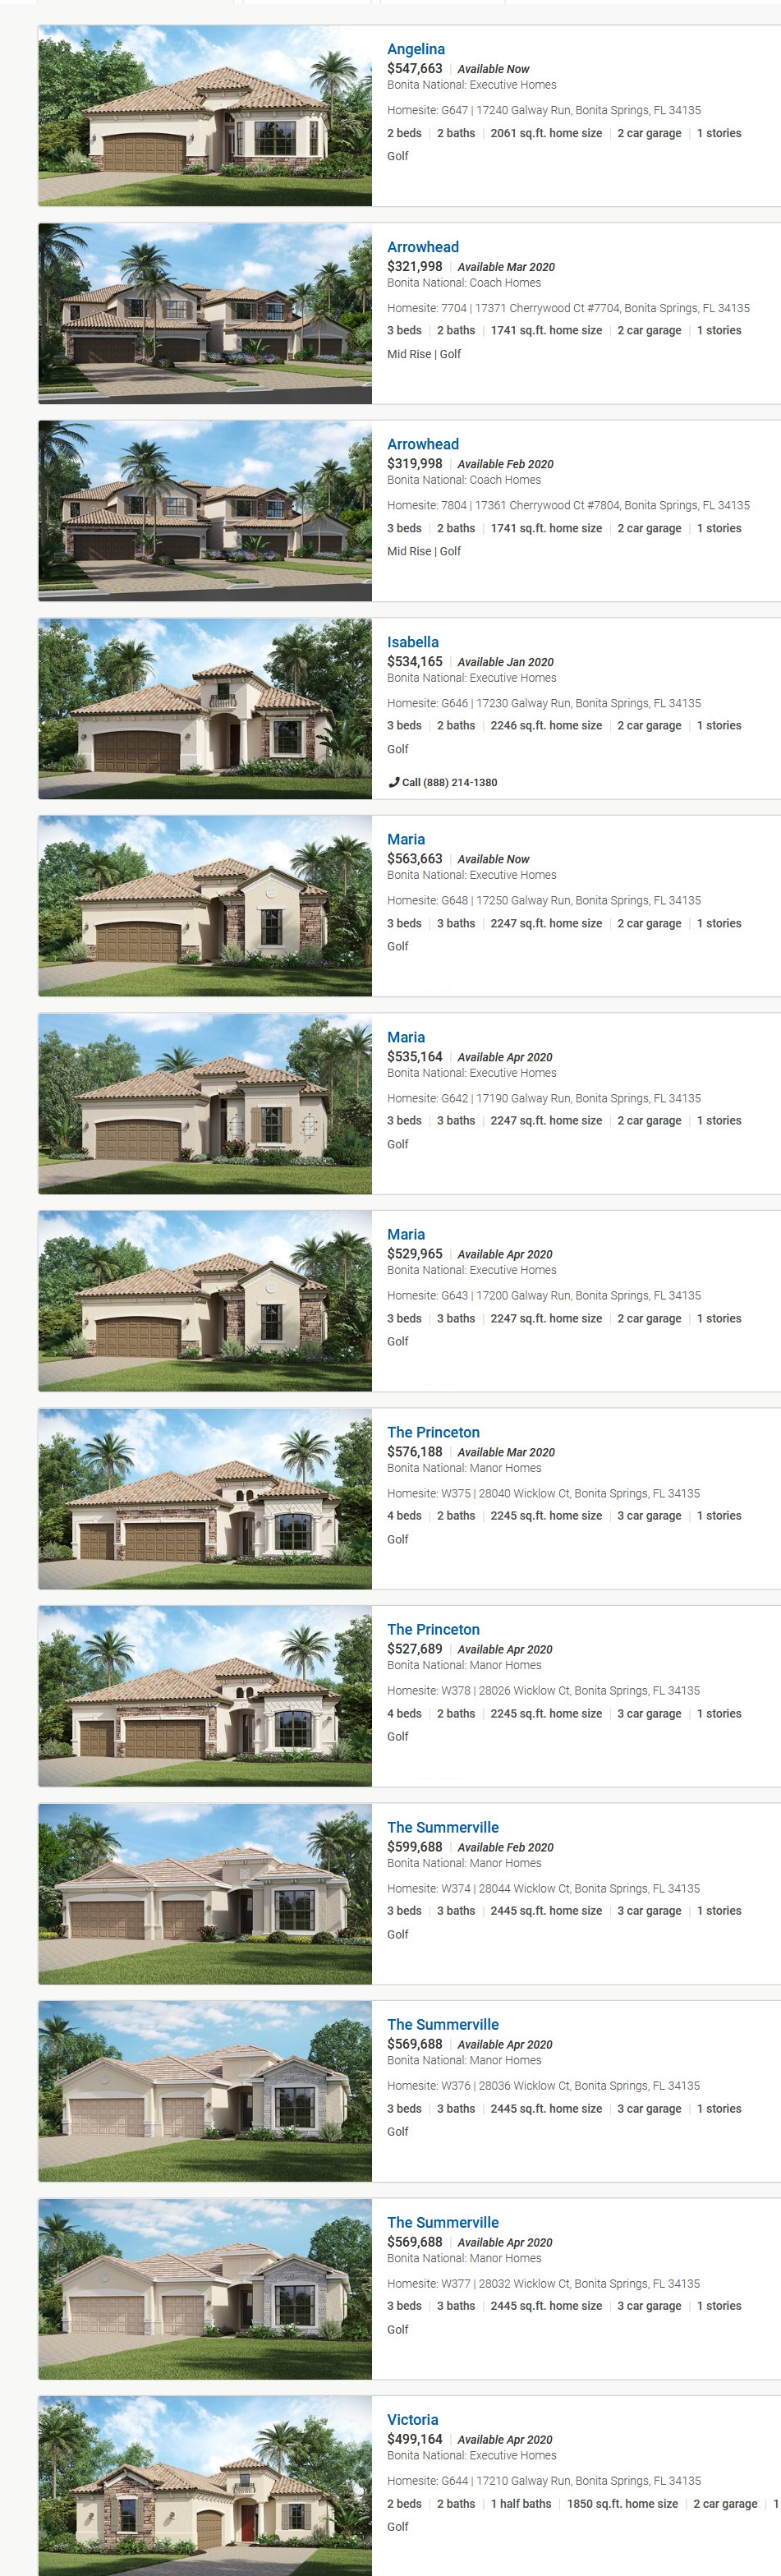 2020-01-14 Bonita National New Home Community - Bonita Springs FL inventory homes